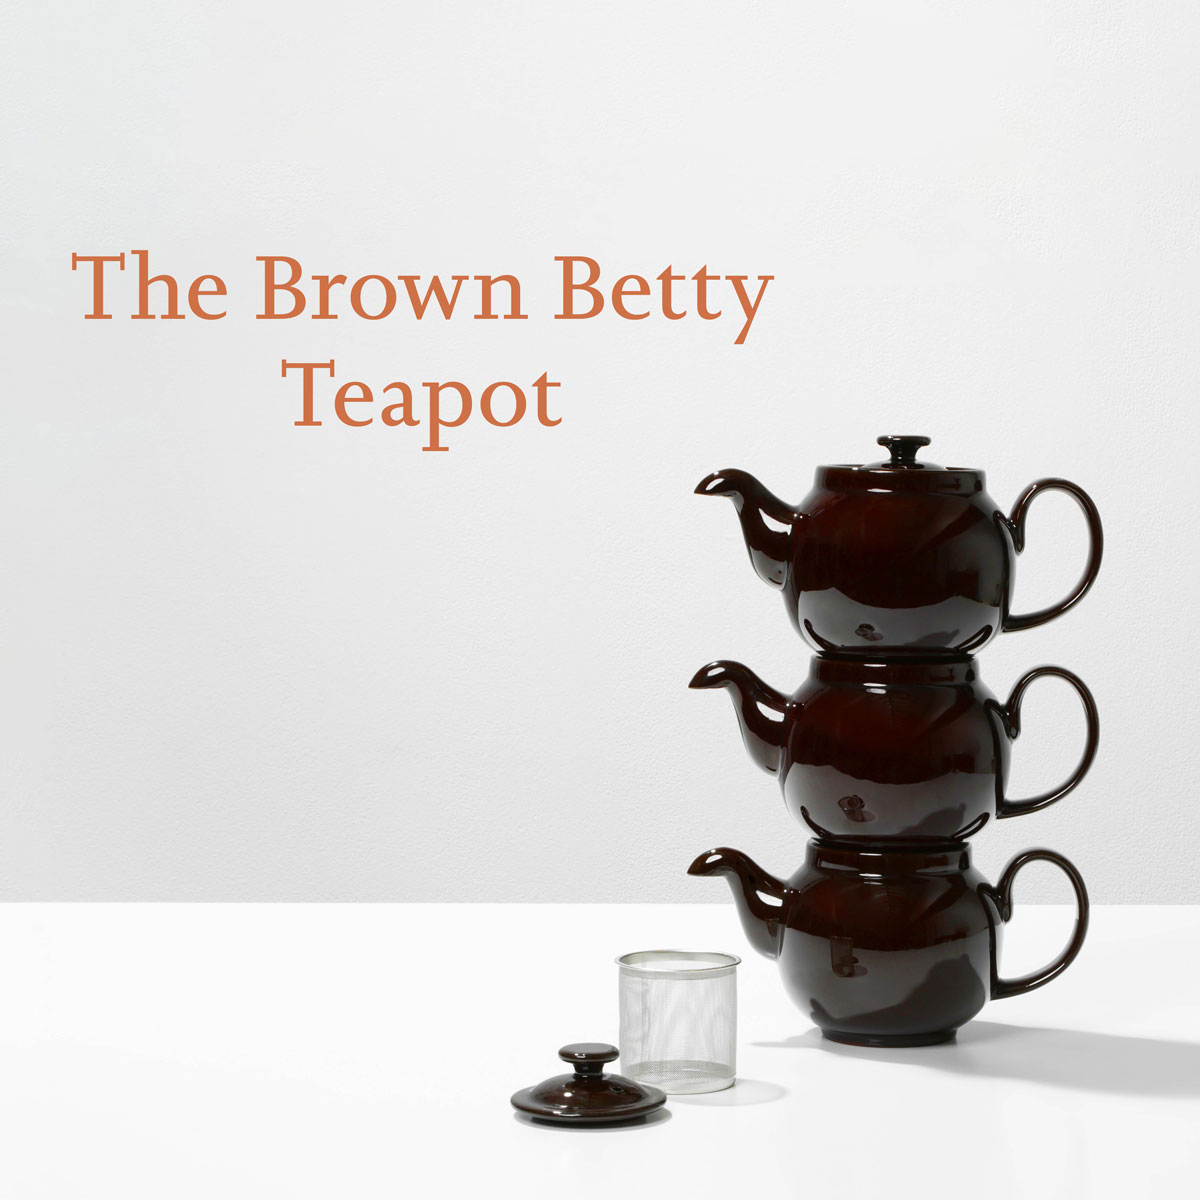 EXPOSITION BROWN BETTY TEAPOT